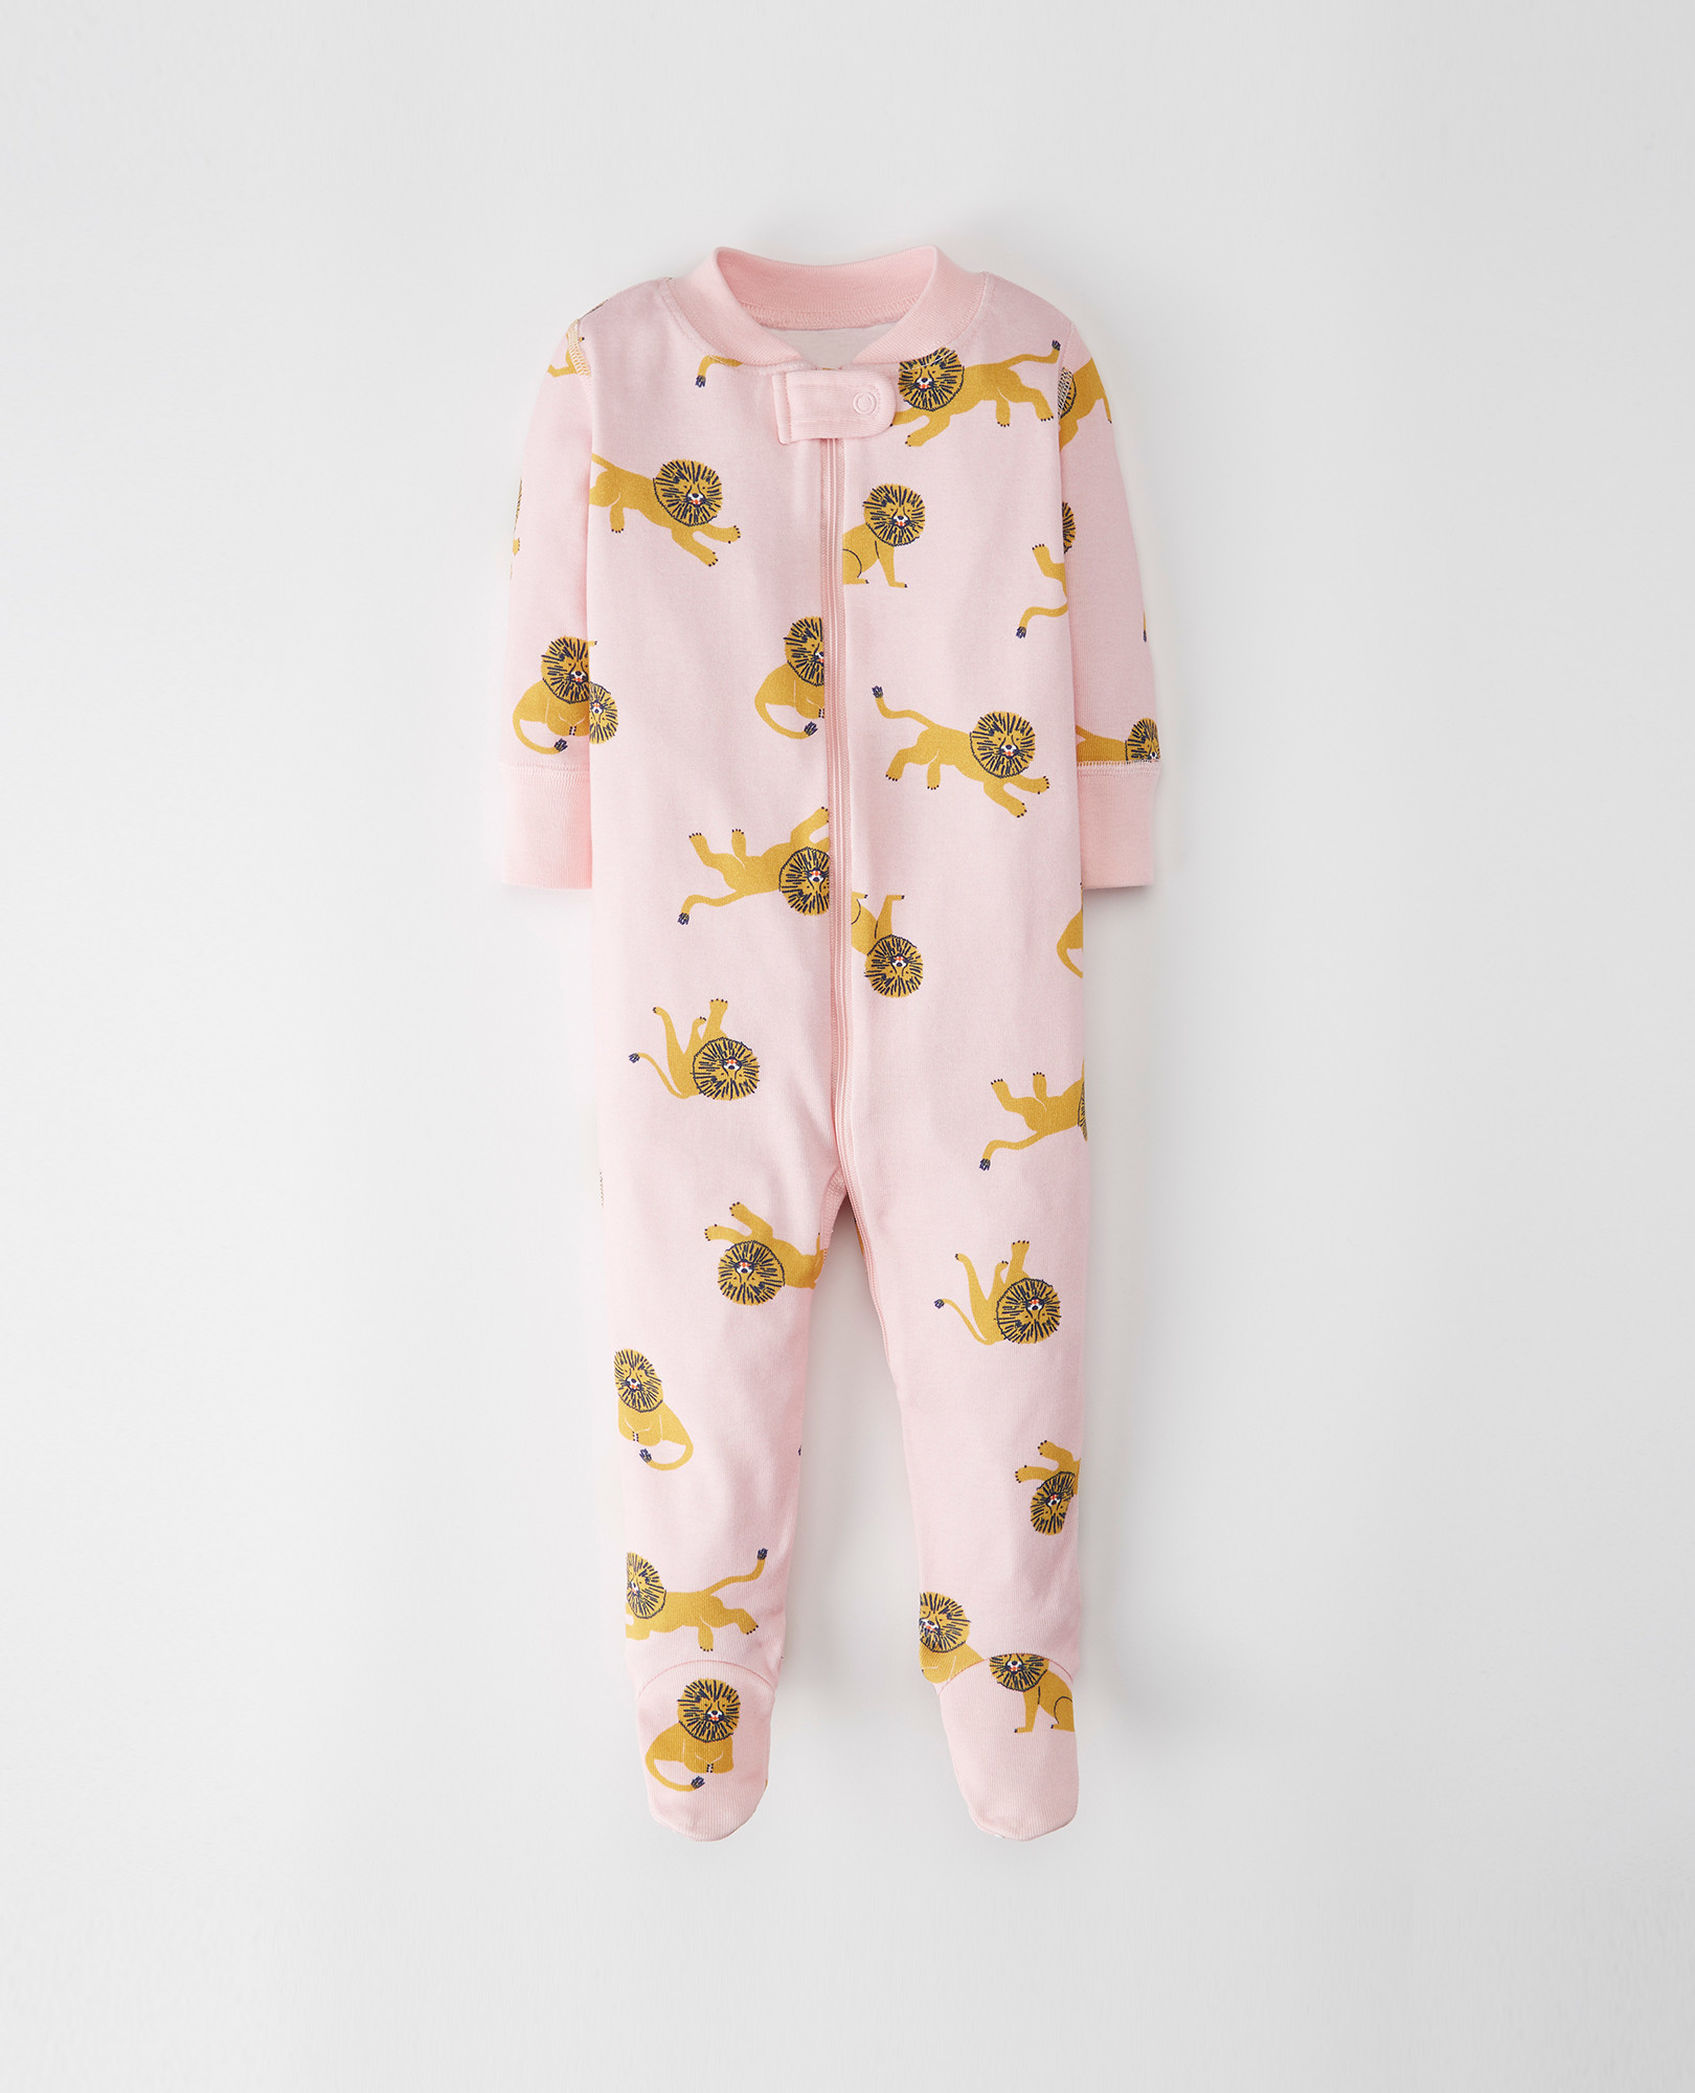 8681c5bec little-sleepers-with-feet-organic-cotton-hanna-andersson-lion-pink ...